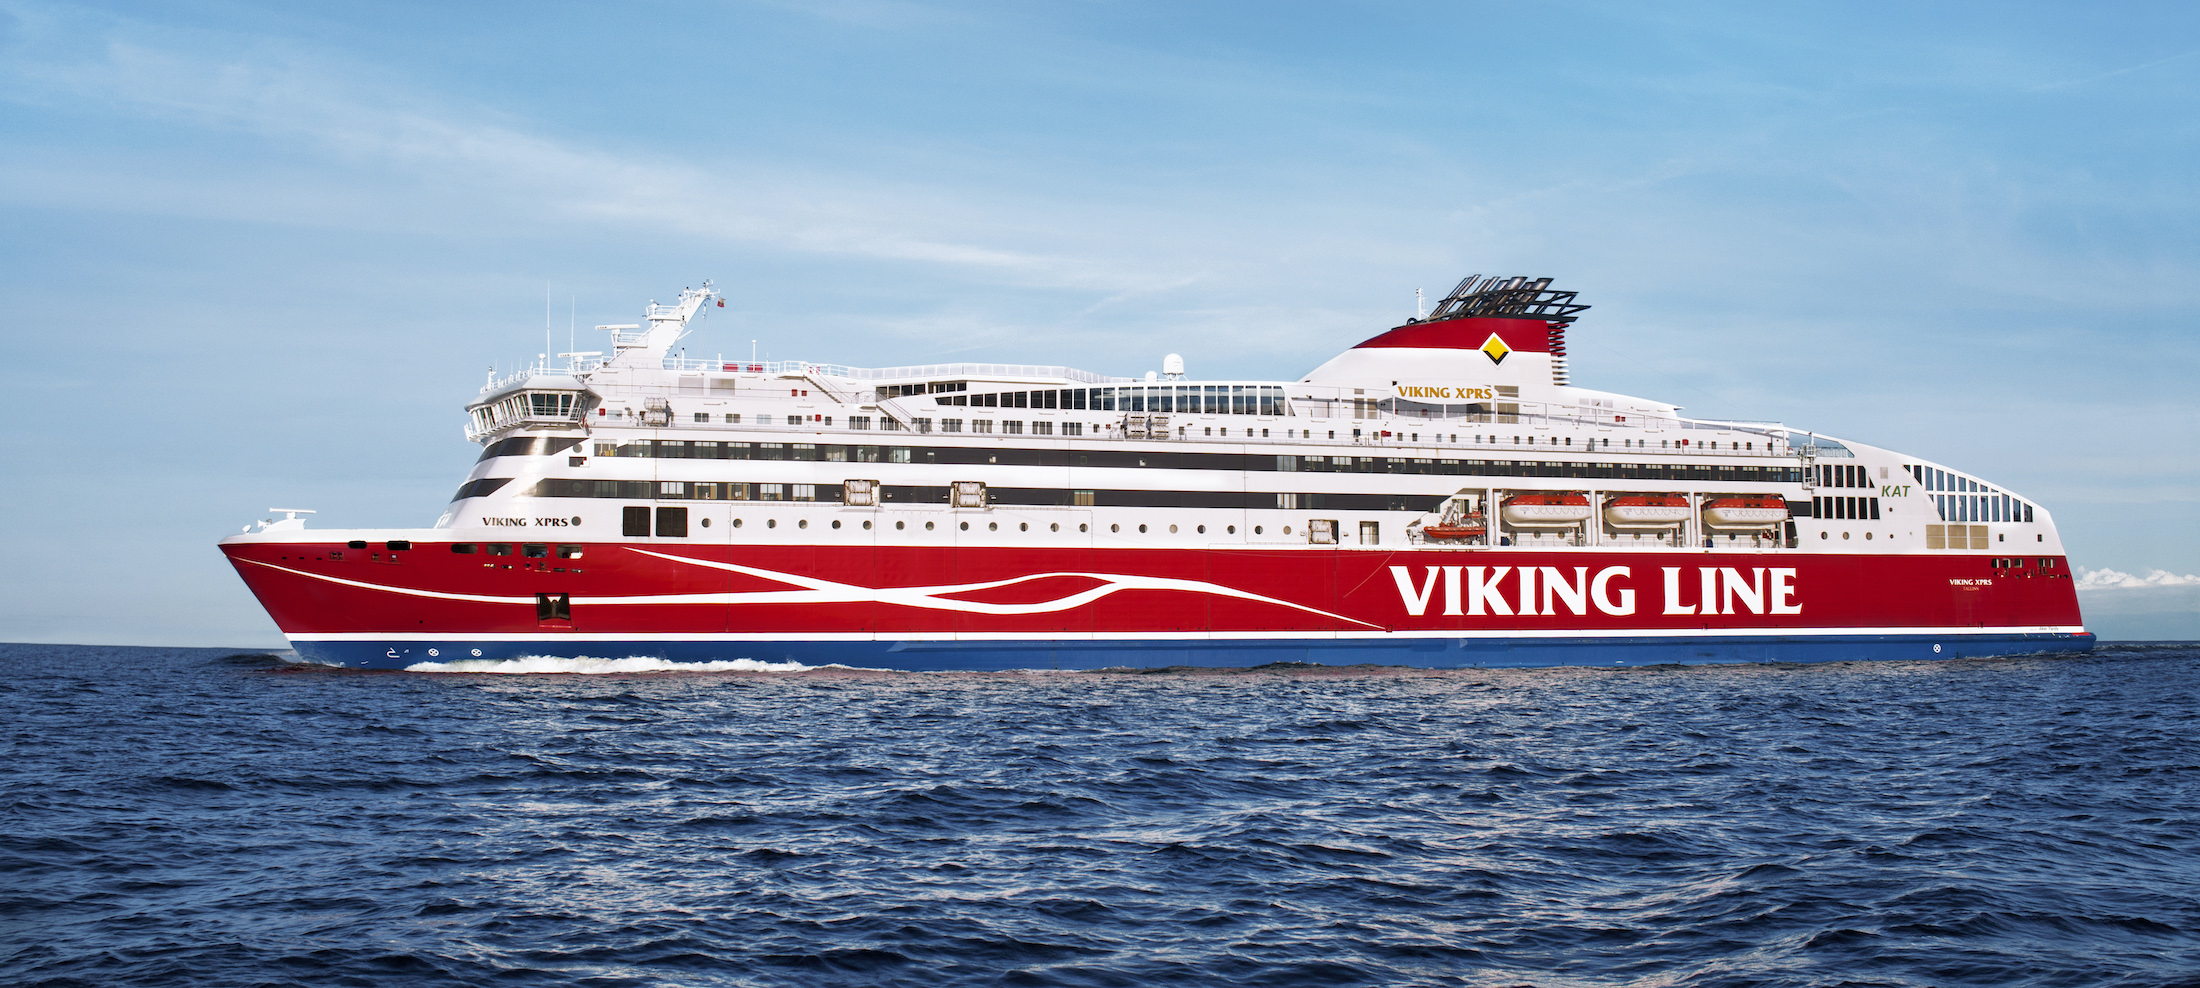 Photo of Viking Line - Viking XPRS ship